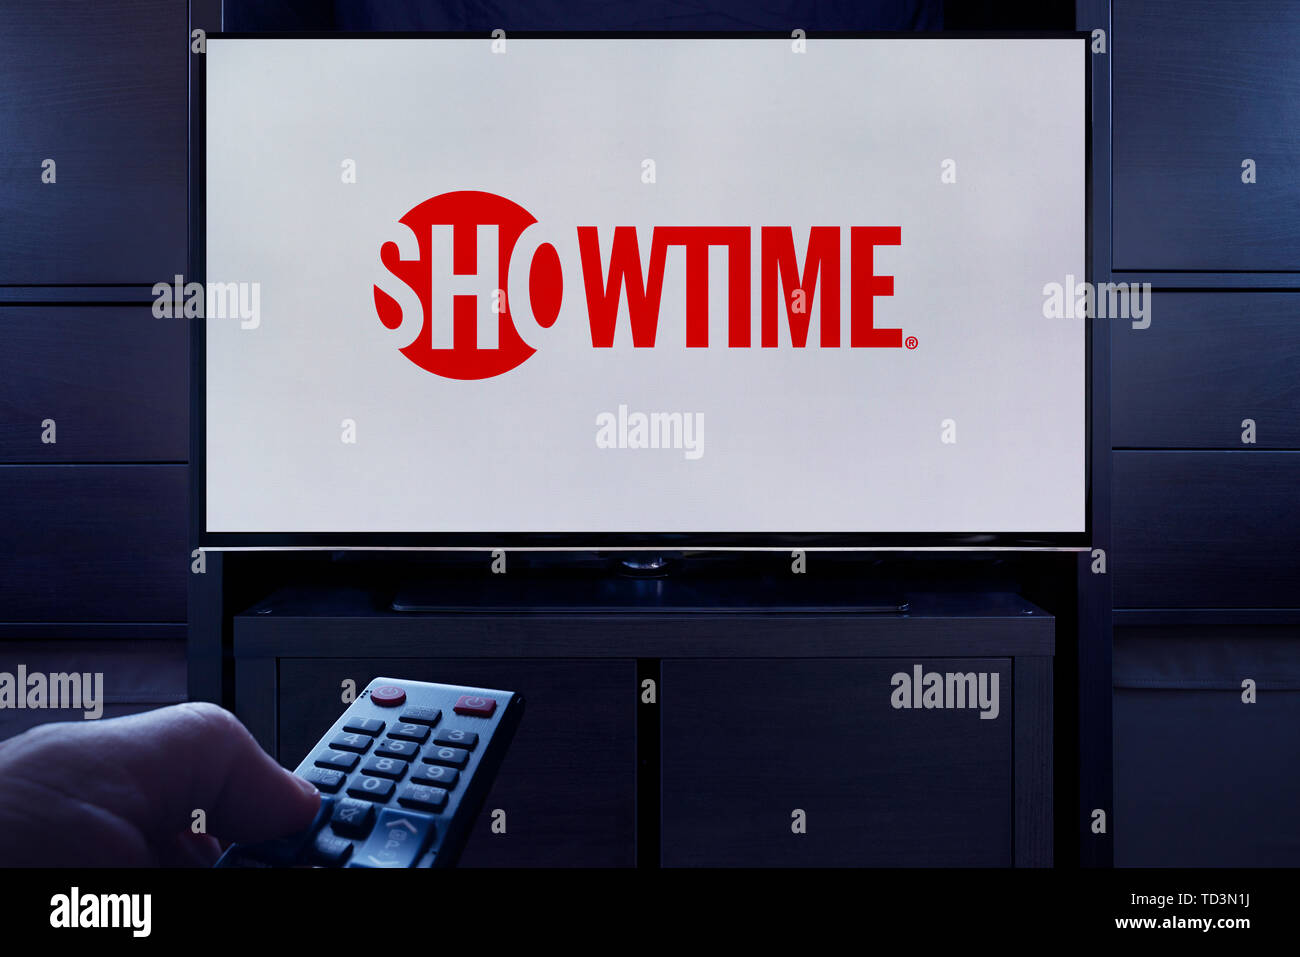 A man points a TV remote at the television which displays the logo for the Showtime on demand video streaming service (Editorial use only). - Stock Image